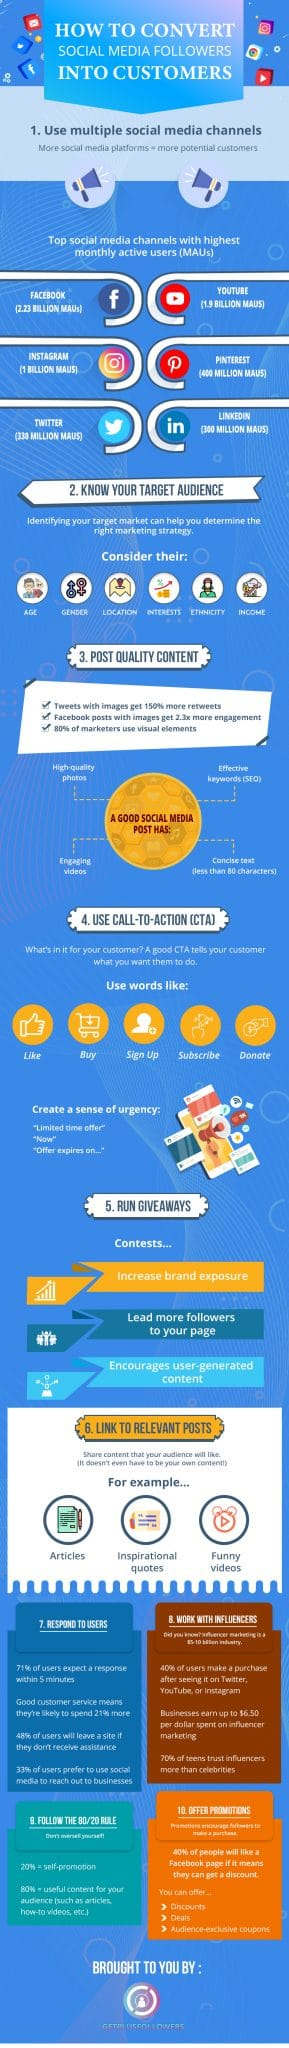 Convert Social Media Followers Into Customers Infographic